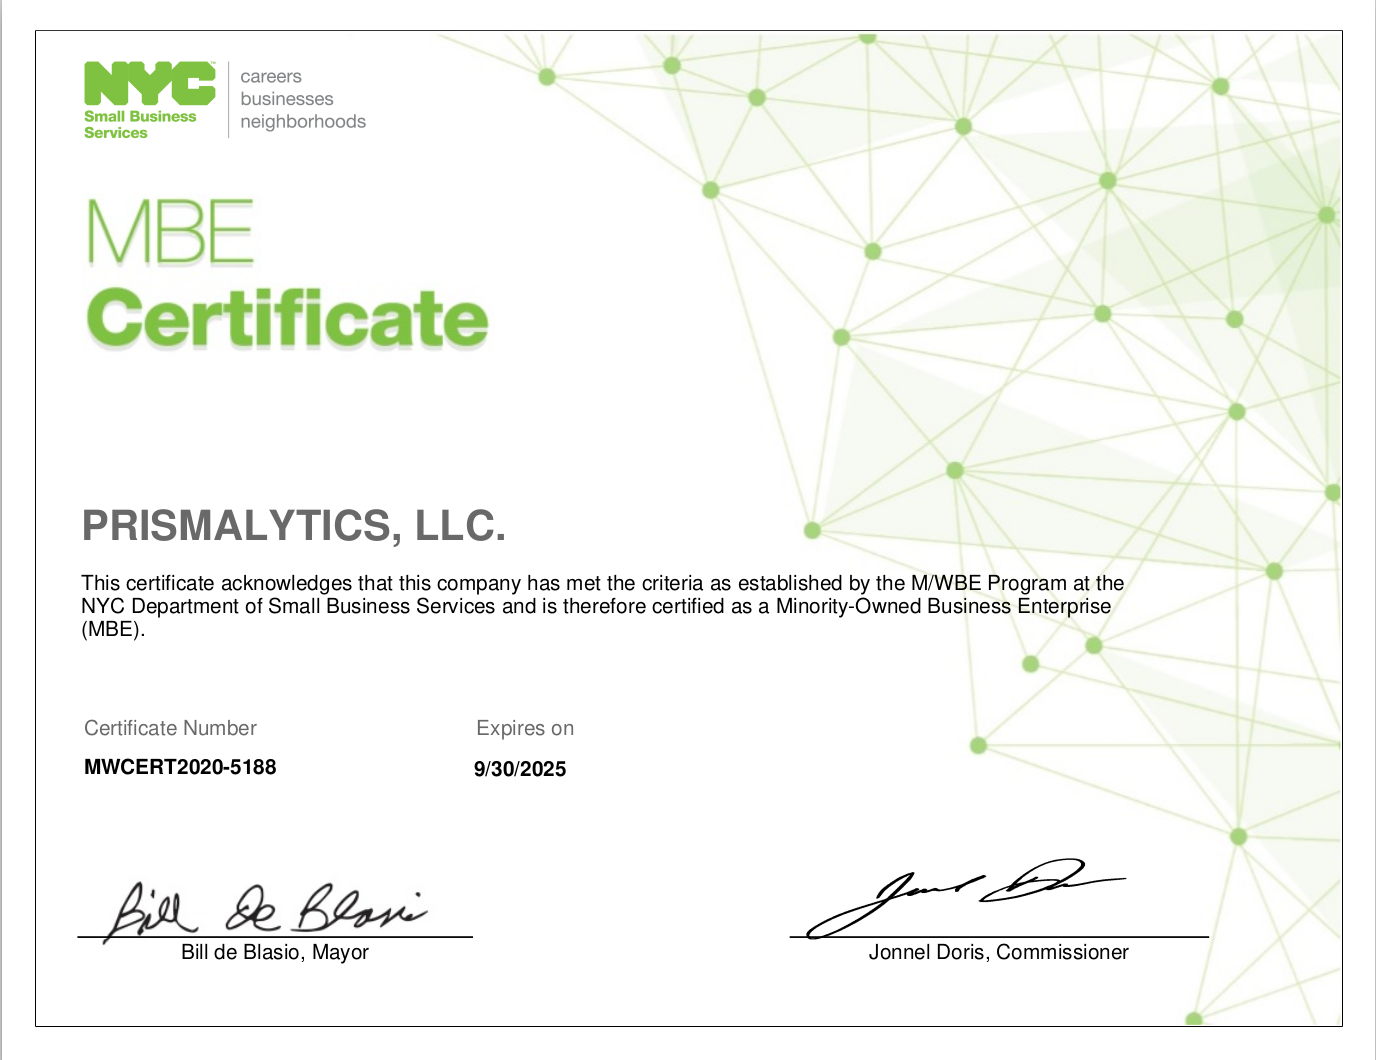 CITY of NEW YORK M/WBE CERTIFICATE for PRISMALYTICS, LLC.